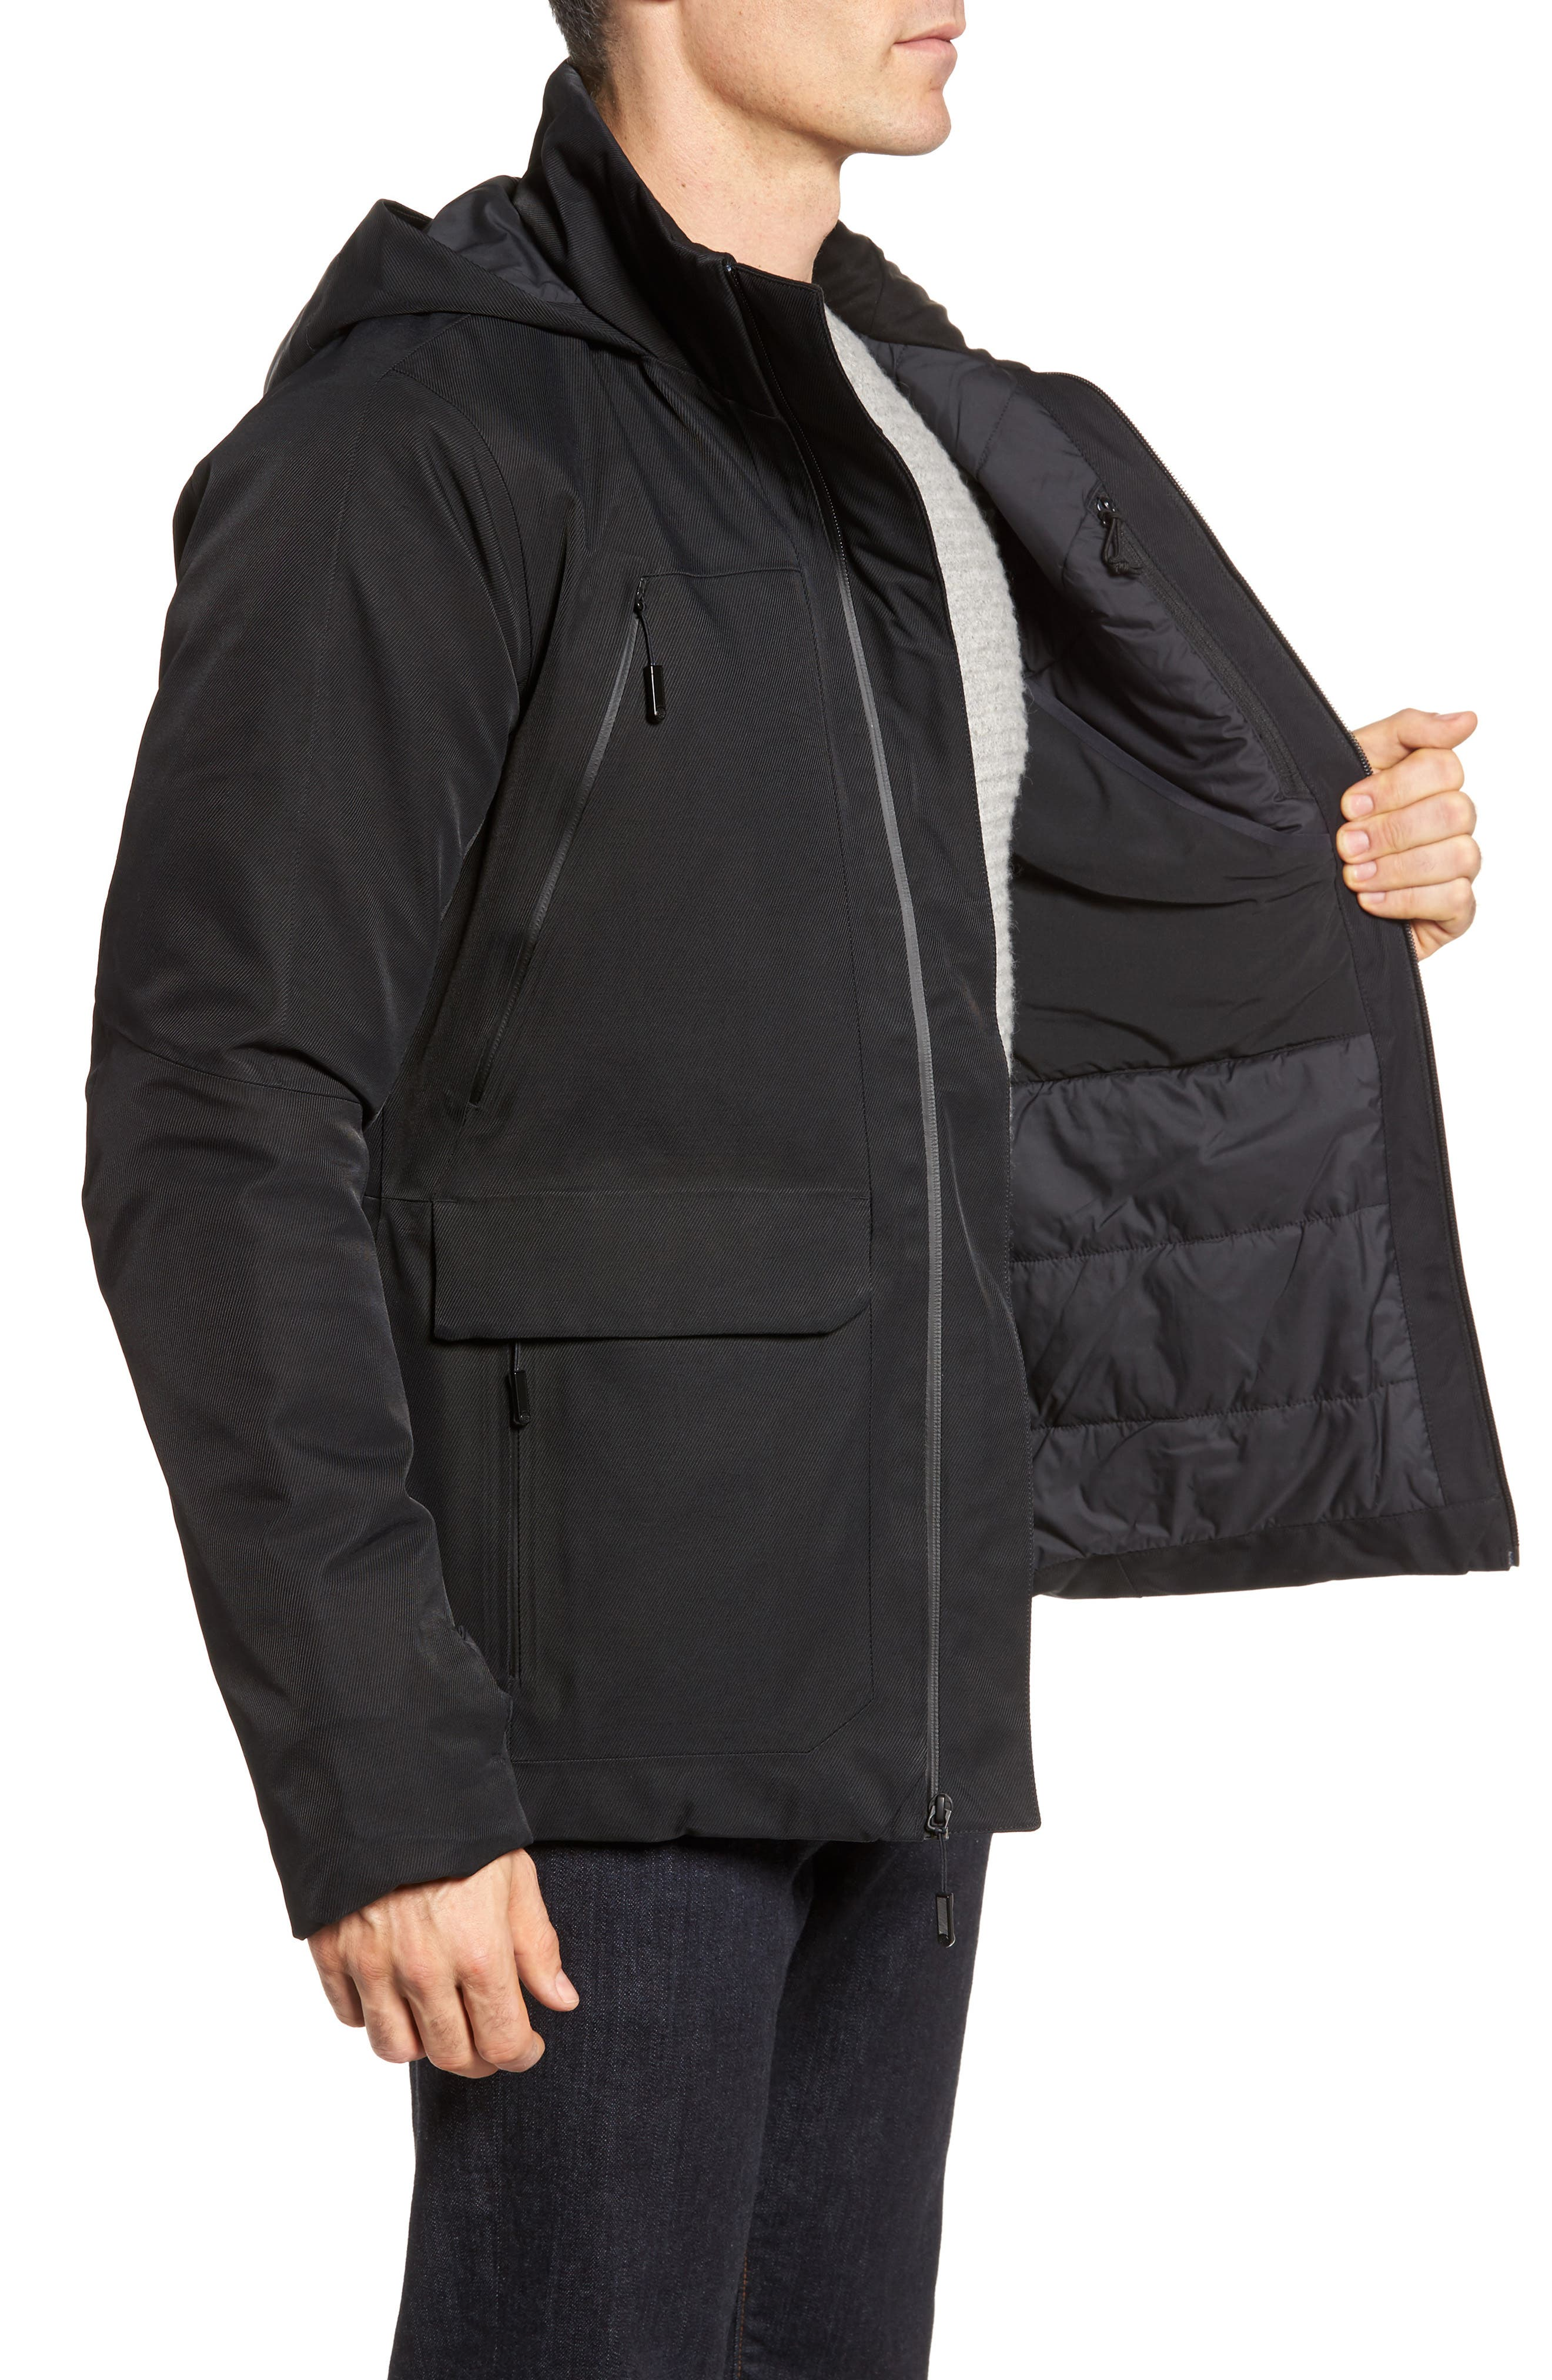 Cryos Waterproof Gore-Tex<sup>®</sup> PrimaLoft<sup>®</sup> Gold Insulated Jacket,                             Alternate thumbnail 3, color,